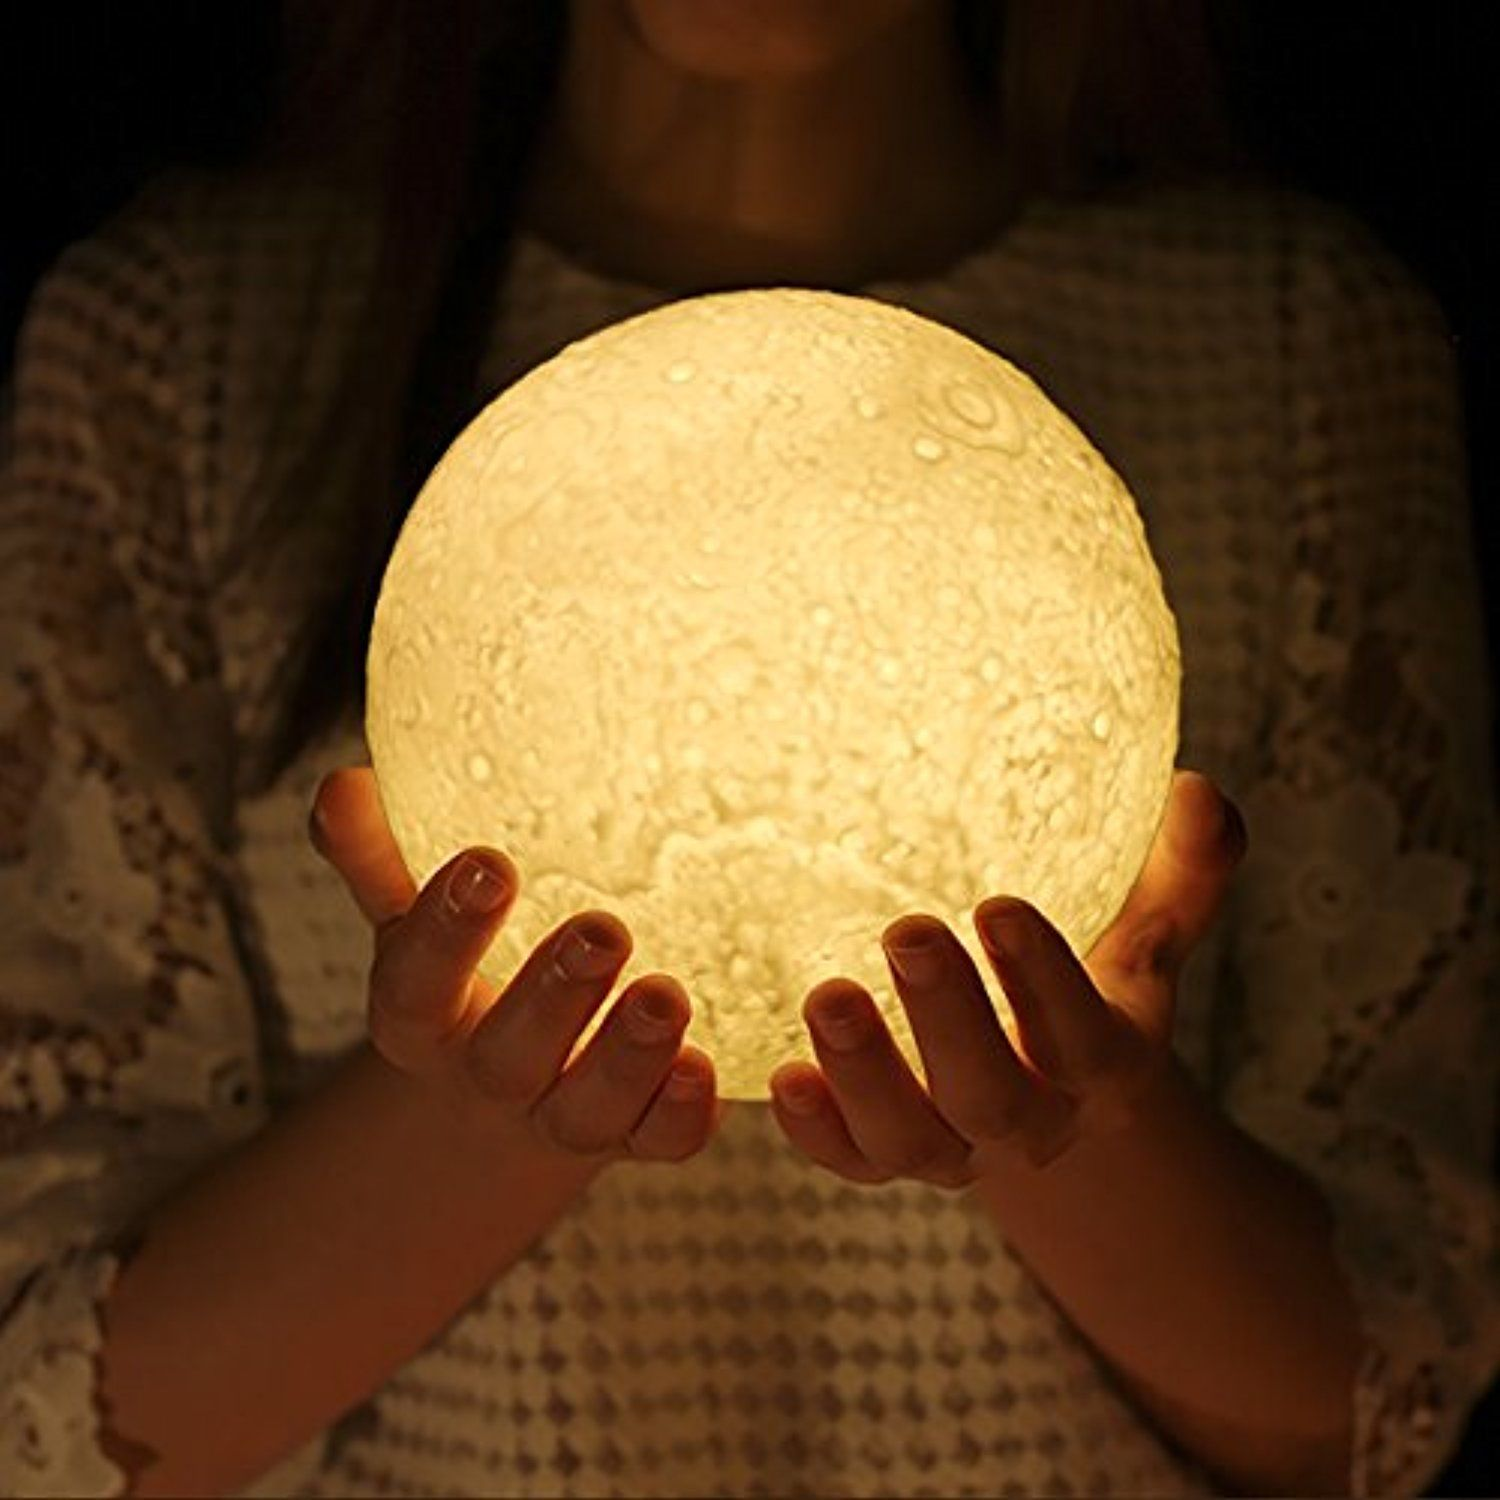 Control Night Dimmable Light 3d Touch Printed Moon LampProgreen PZOlwiukXT